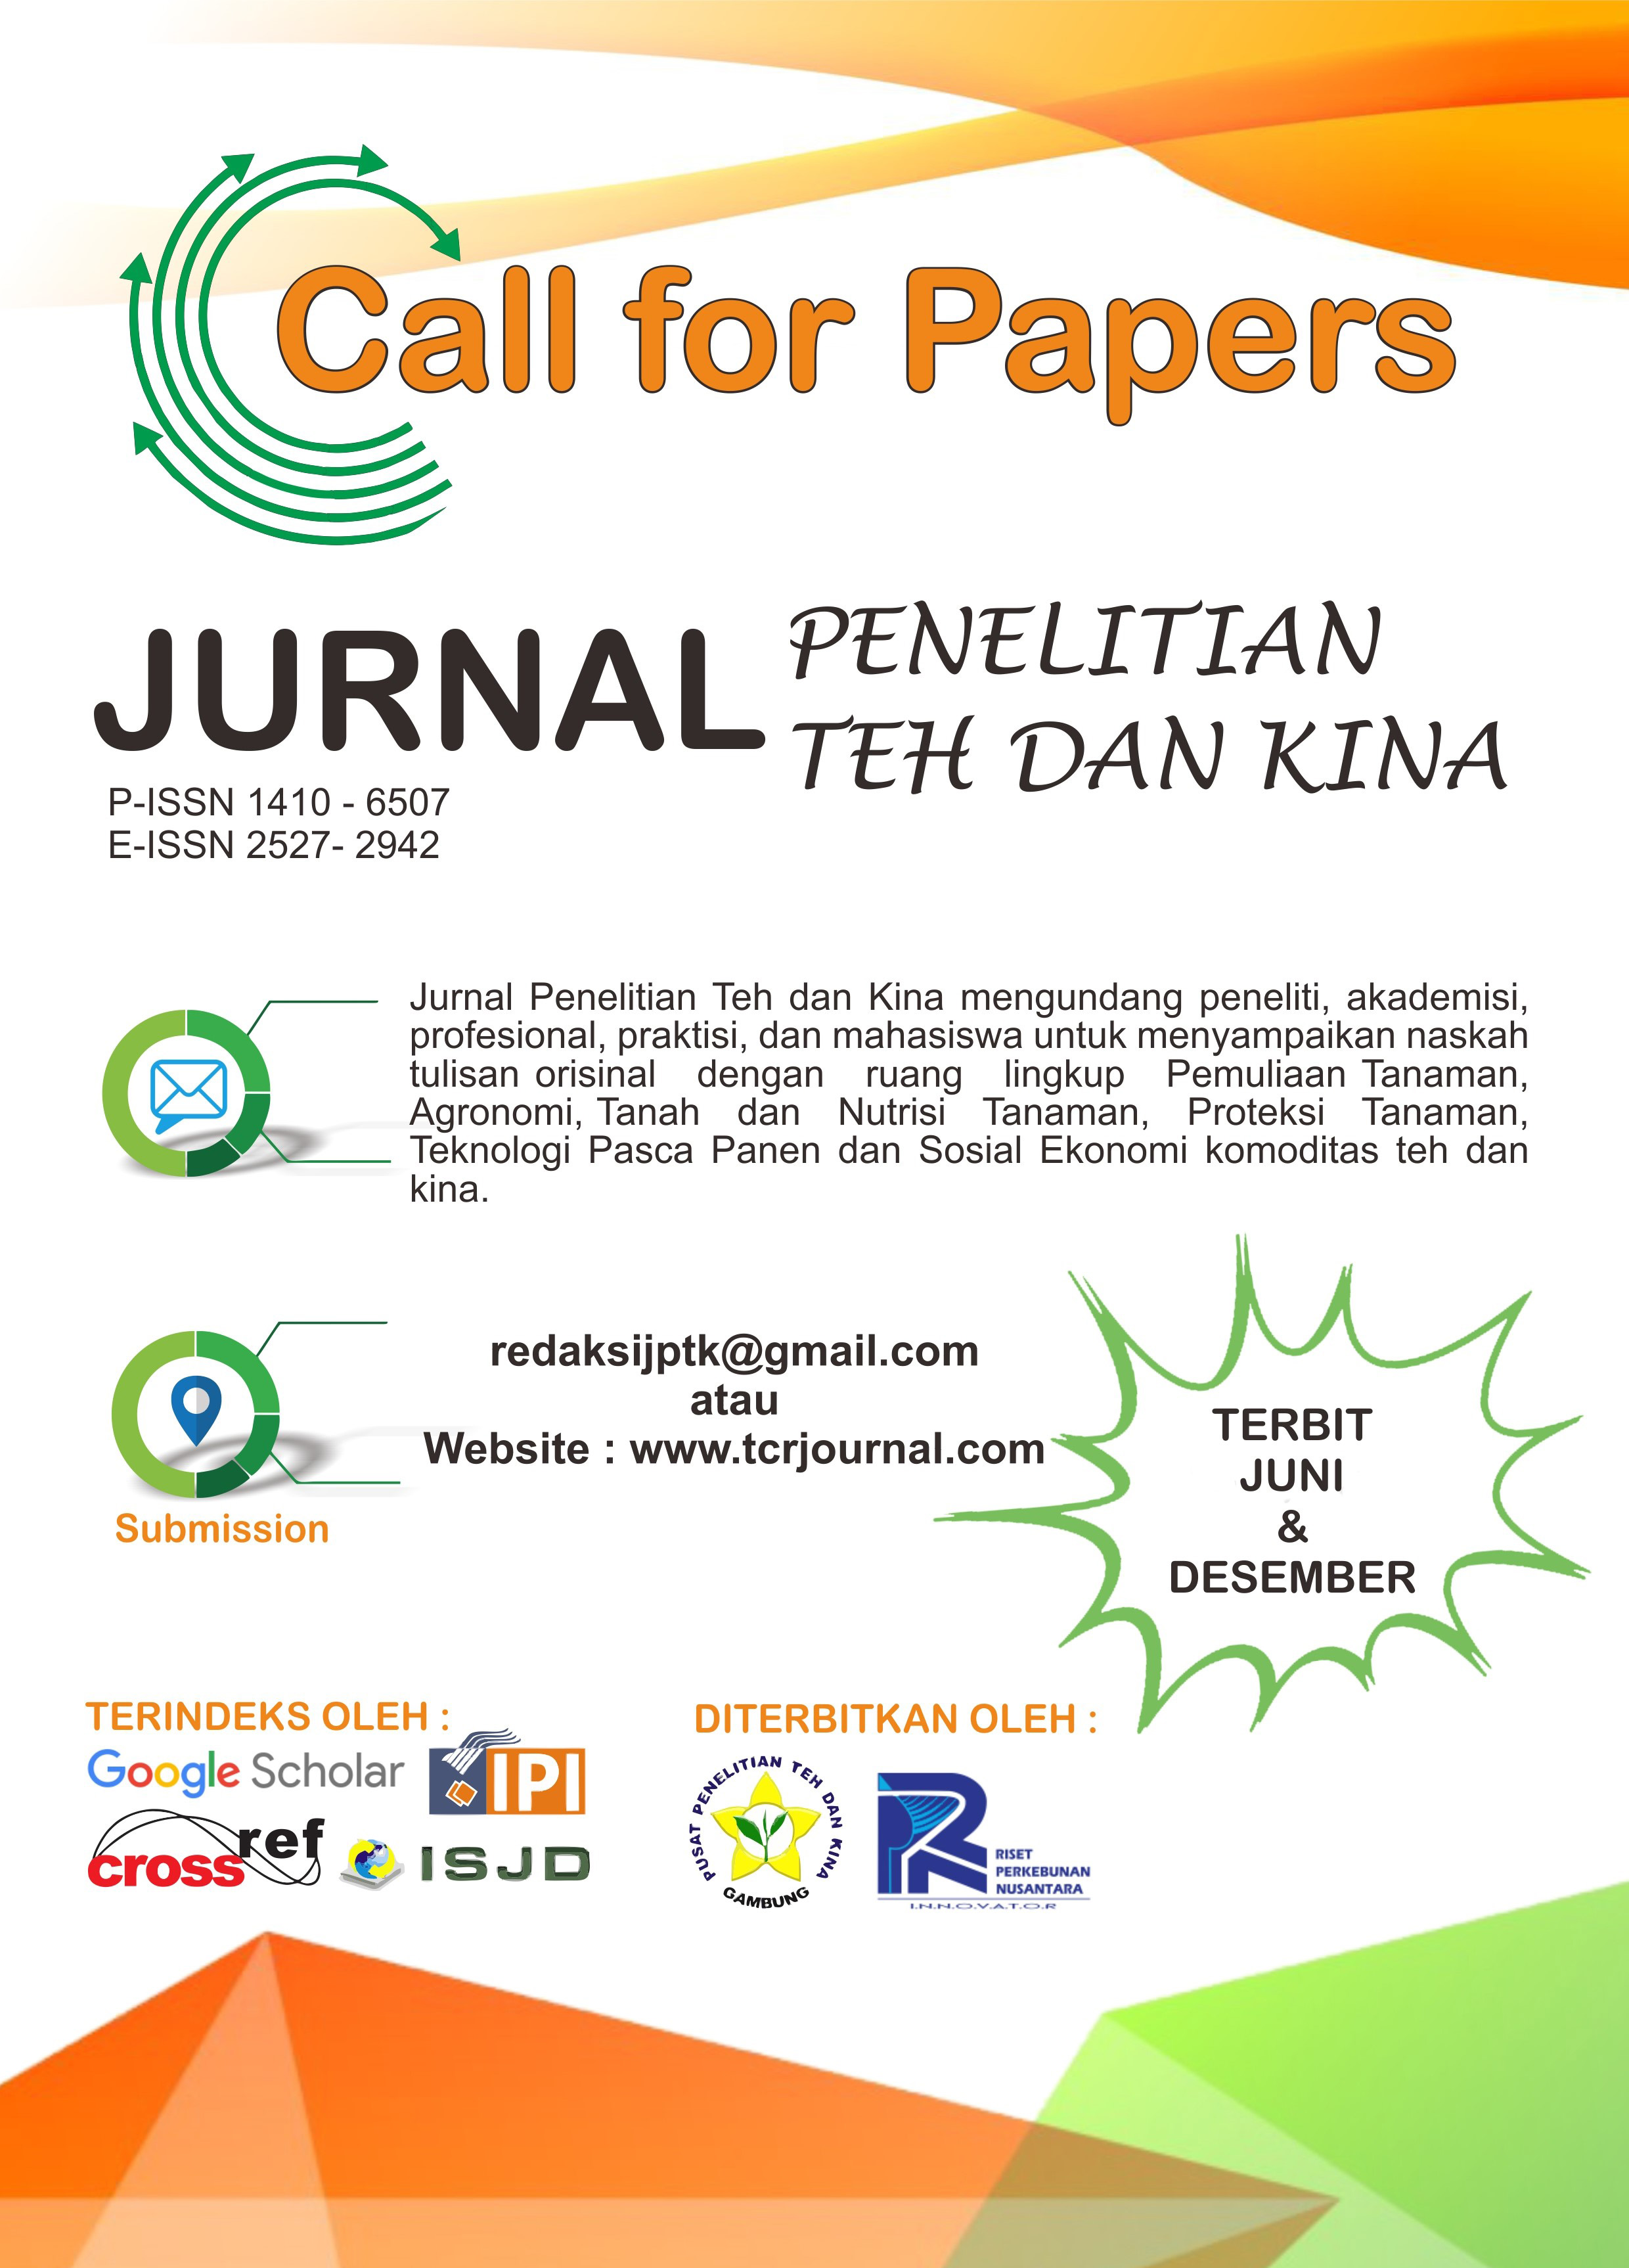 Draf_Call_for_Paper_2.jpg